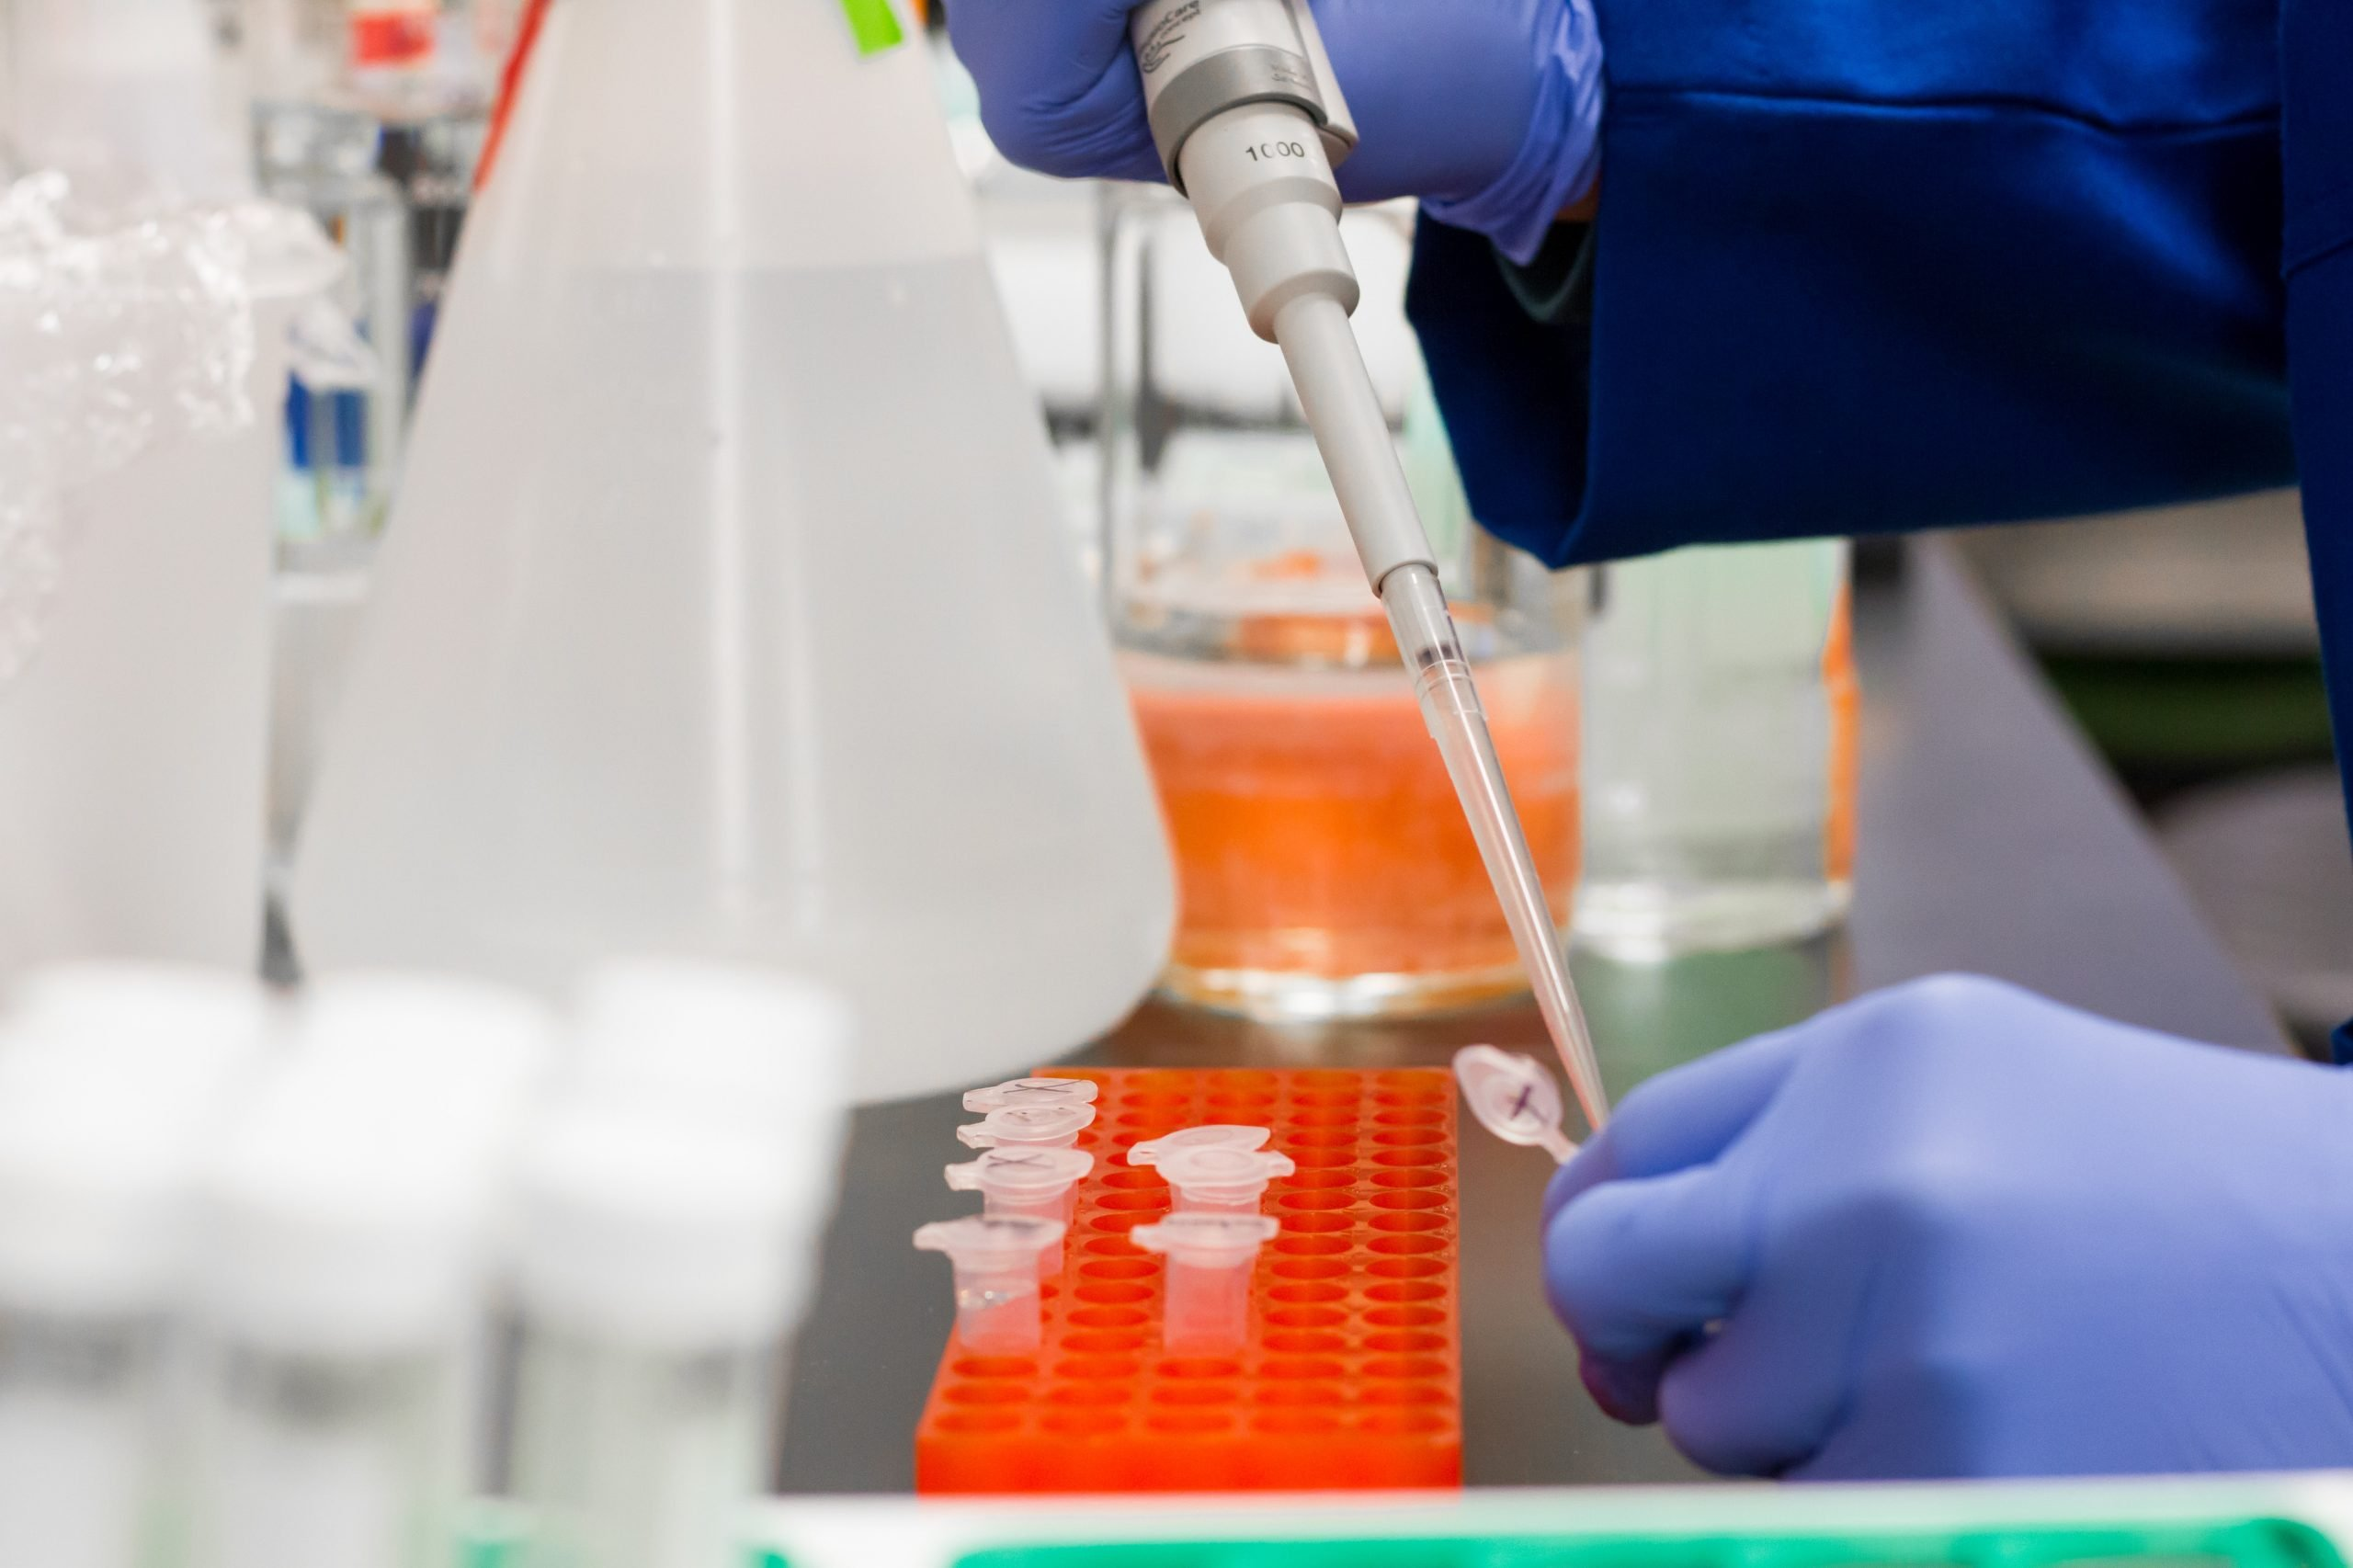 cannabis news - scientist fills sample containers using a pipette